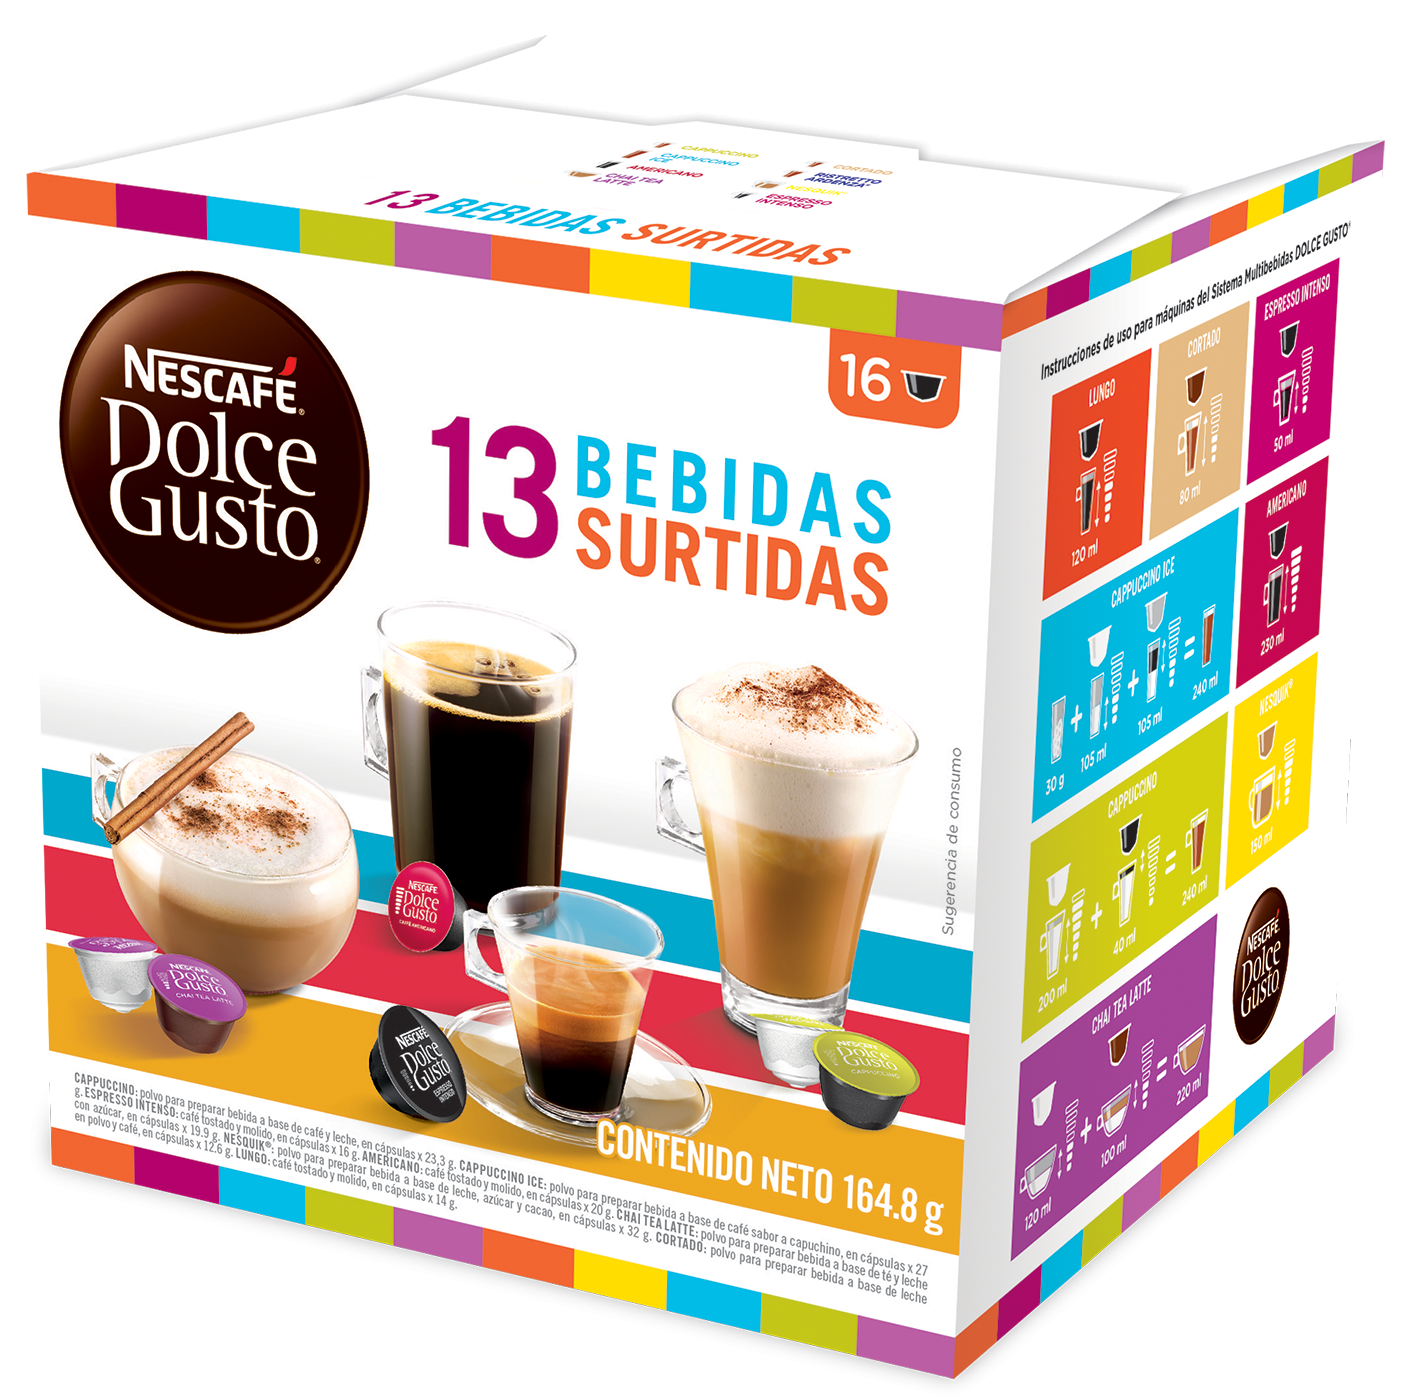 Dolce gusto download free clip art with a transparent.